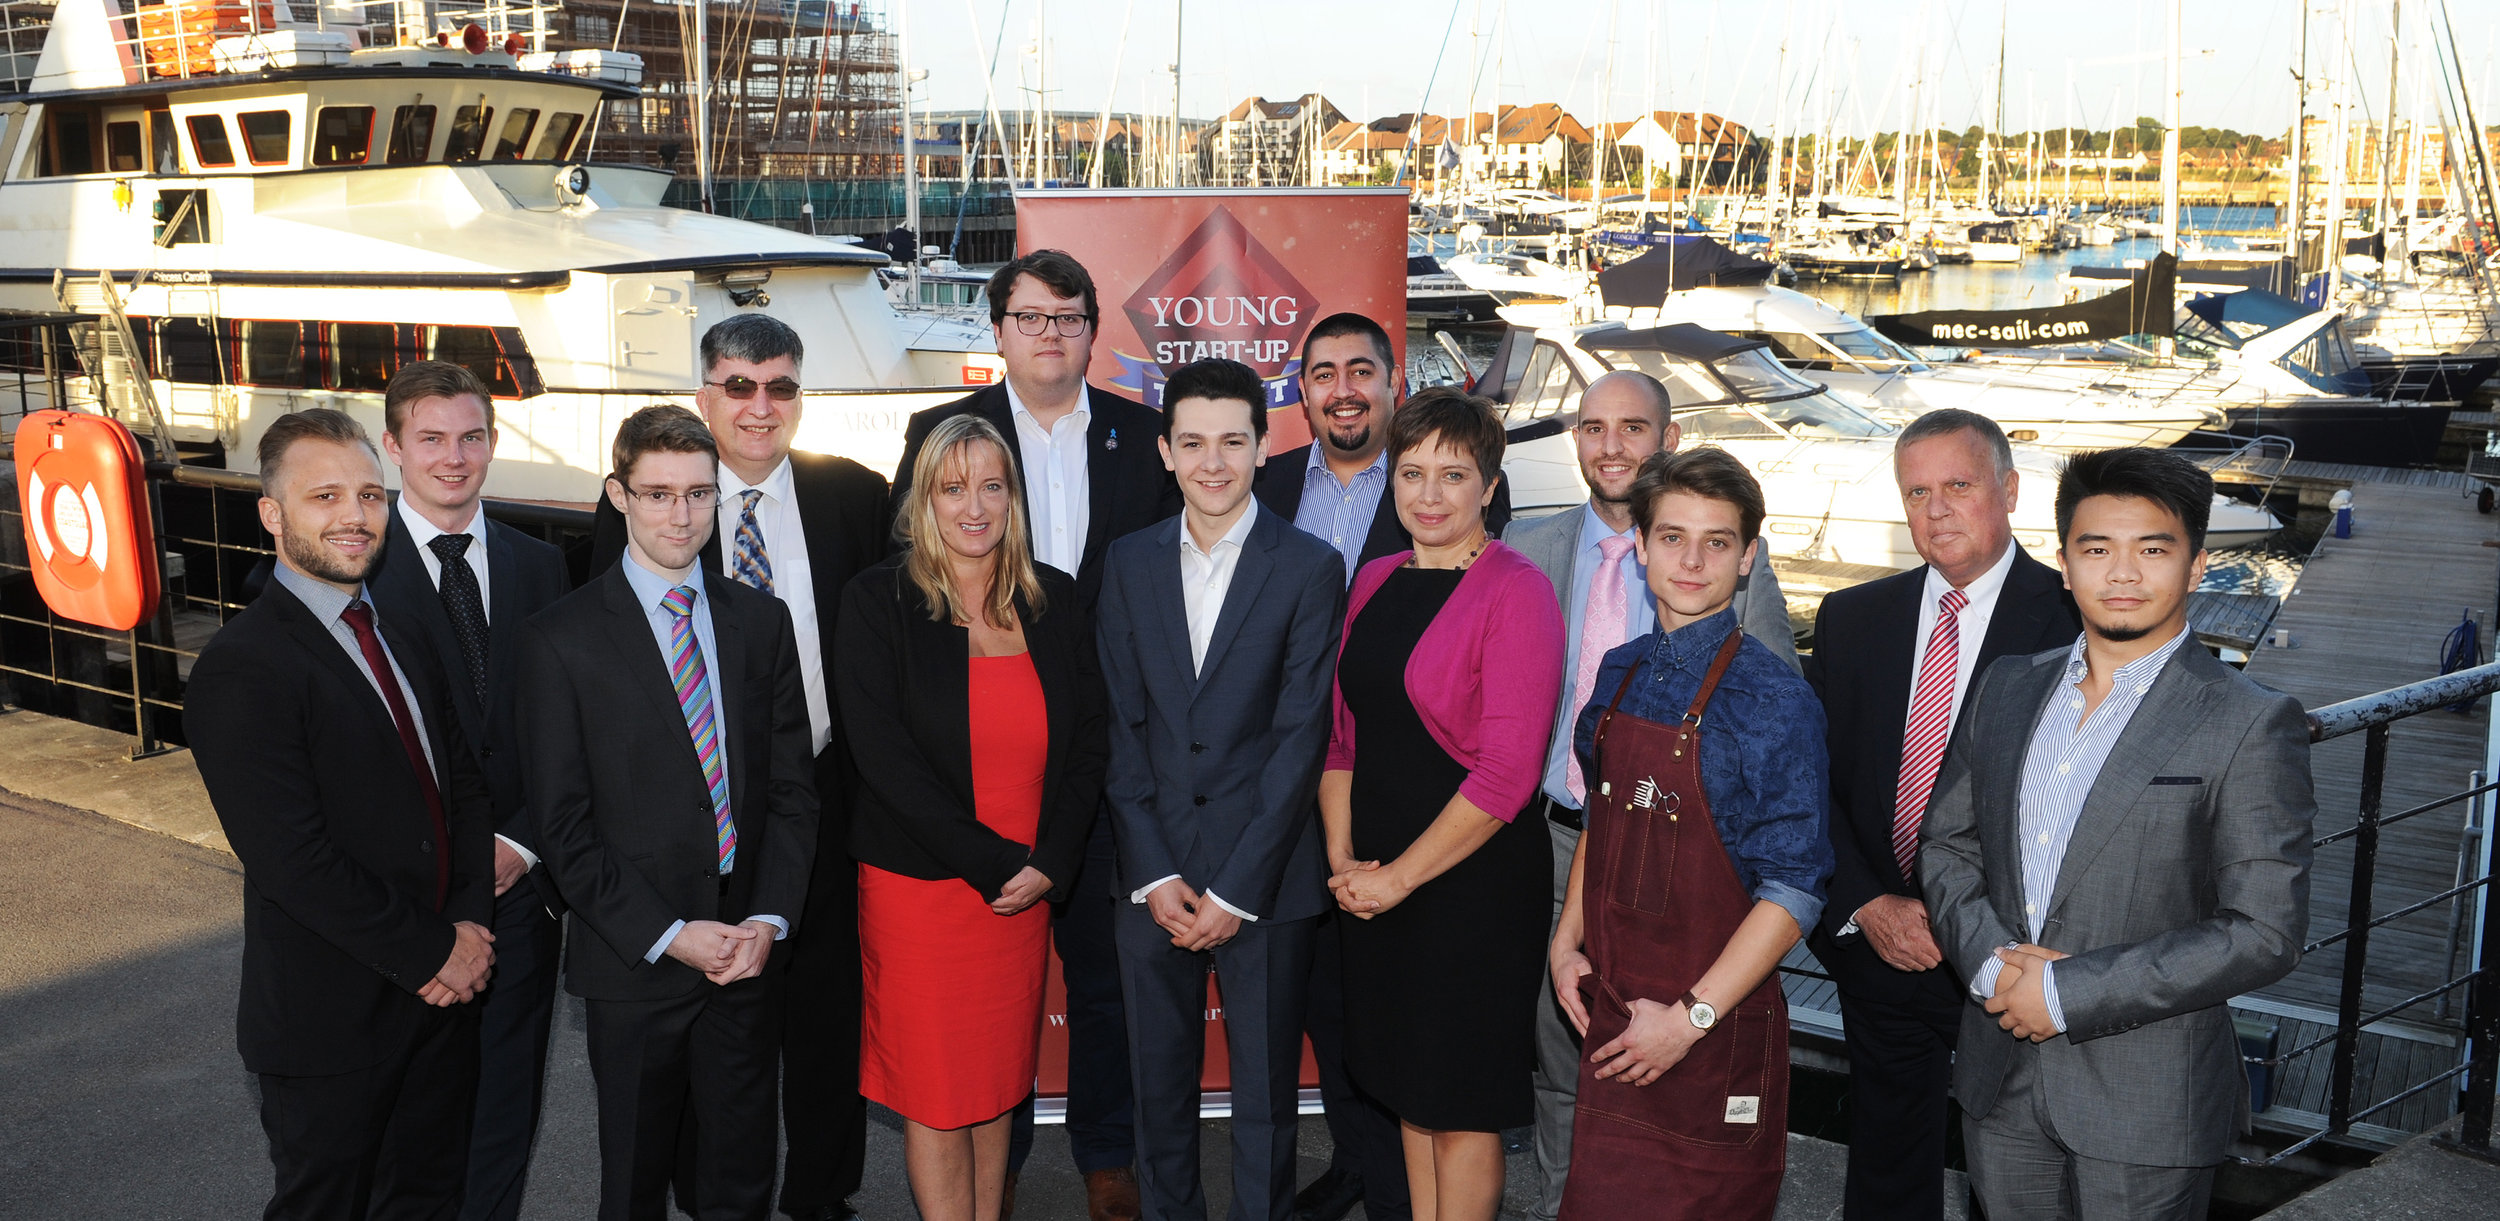 Young Start-up Talent Judges and Finalists Solent 2016